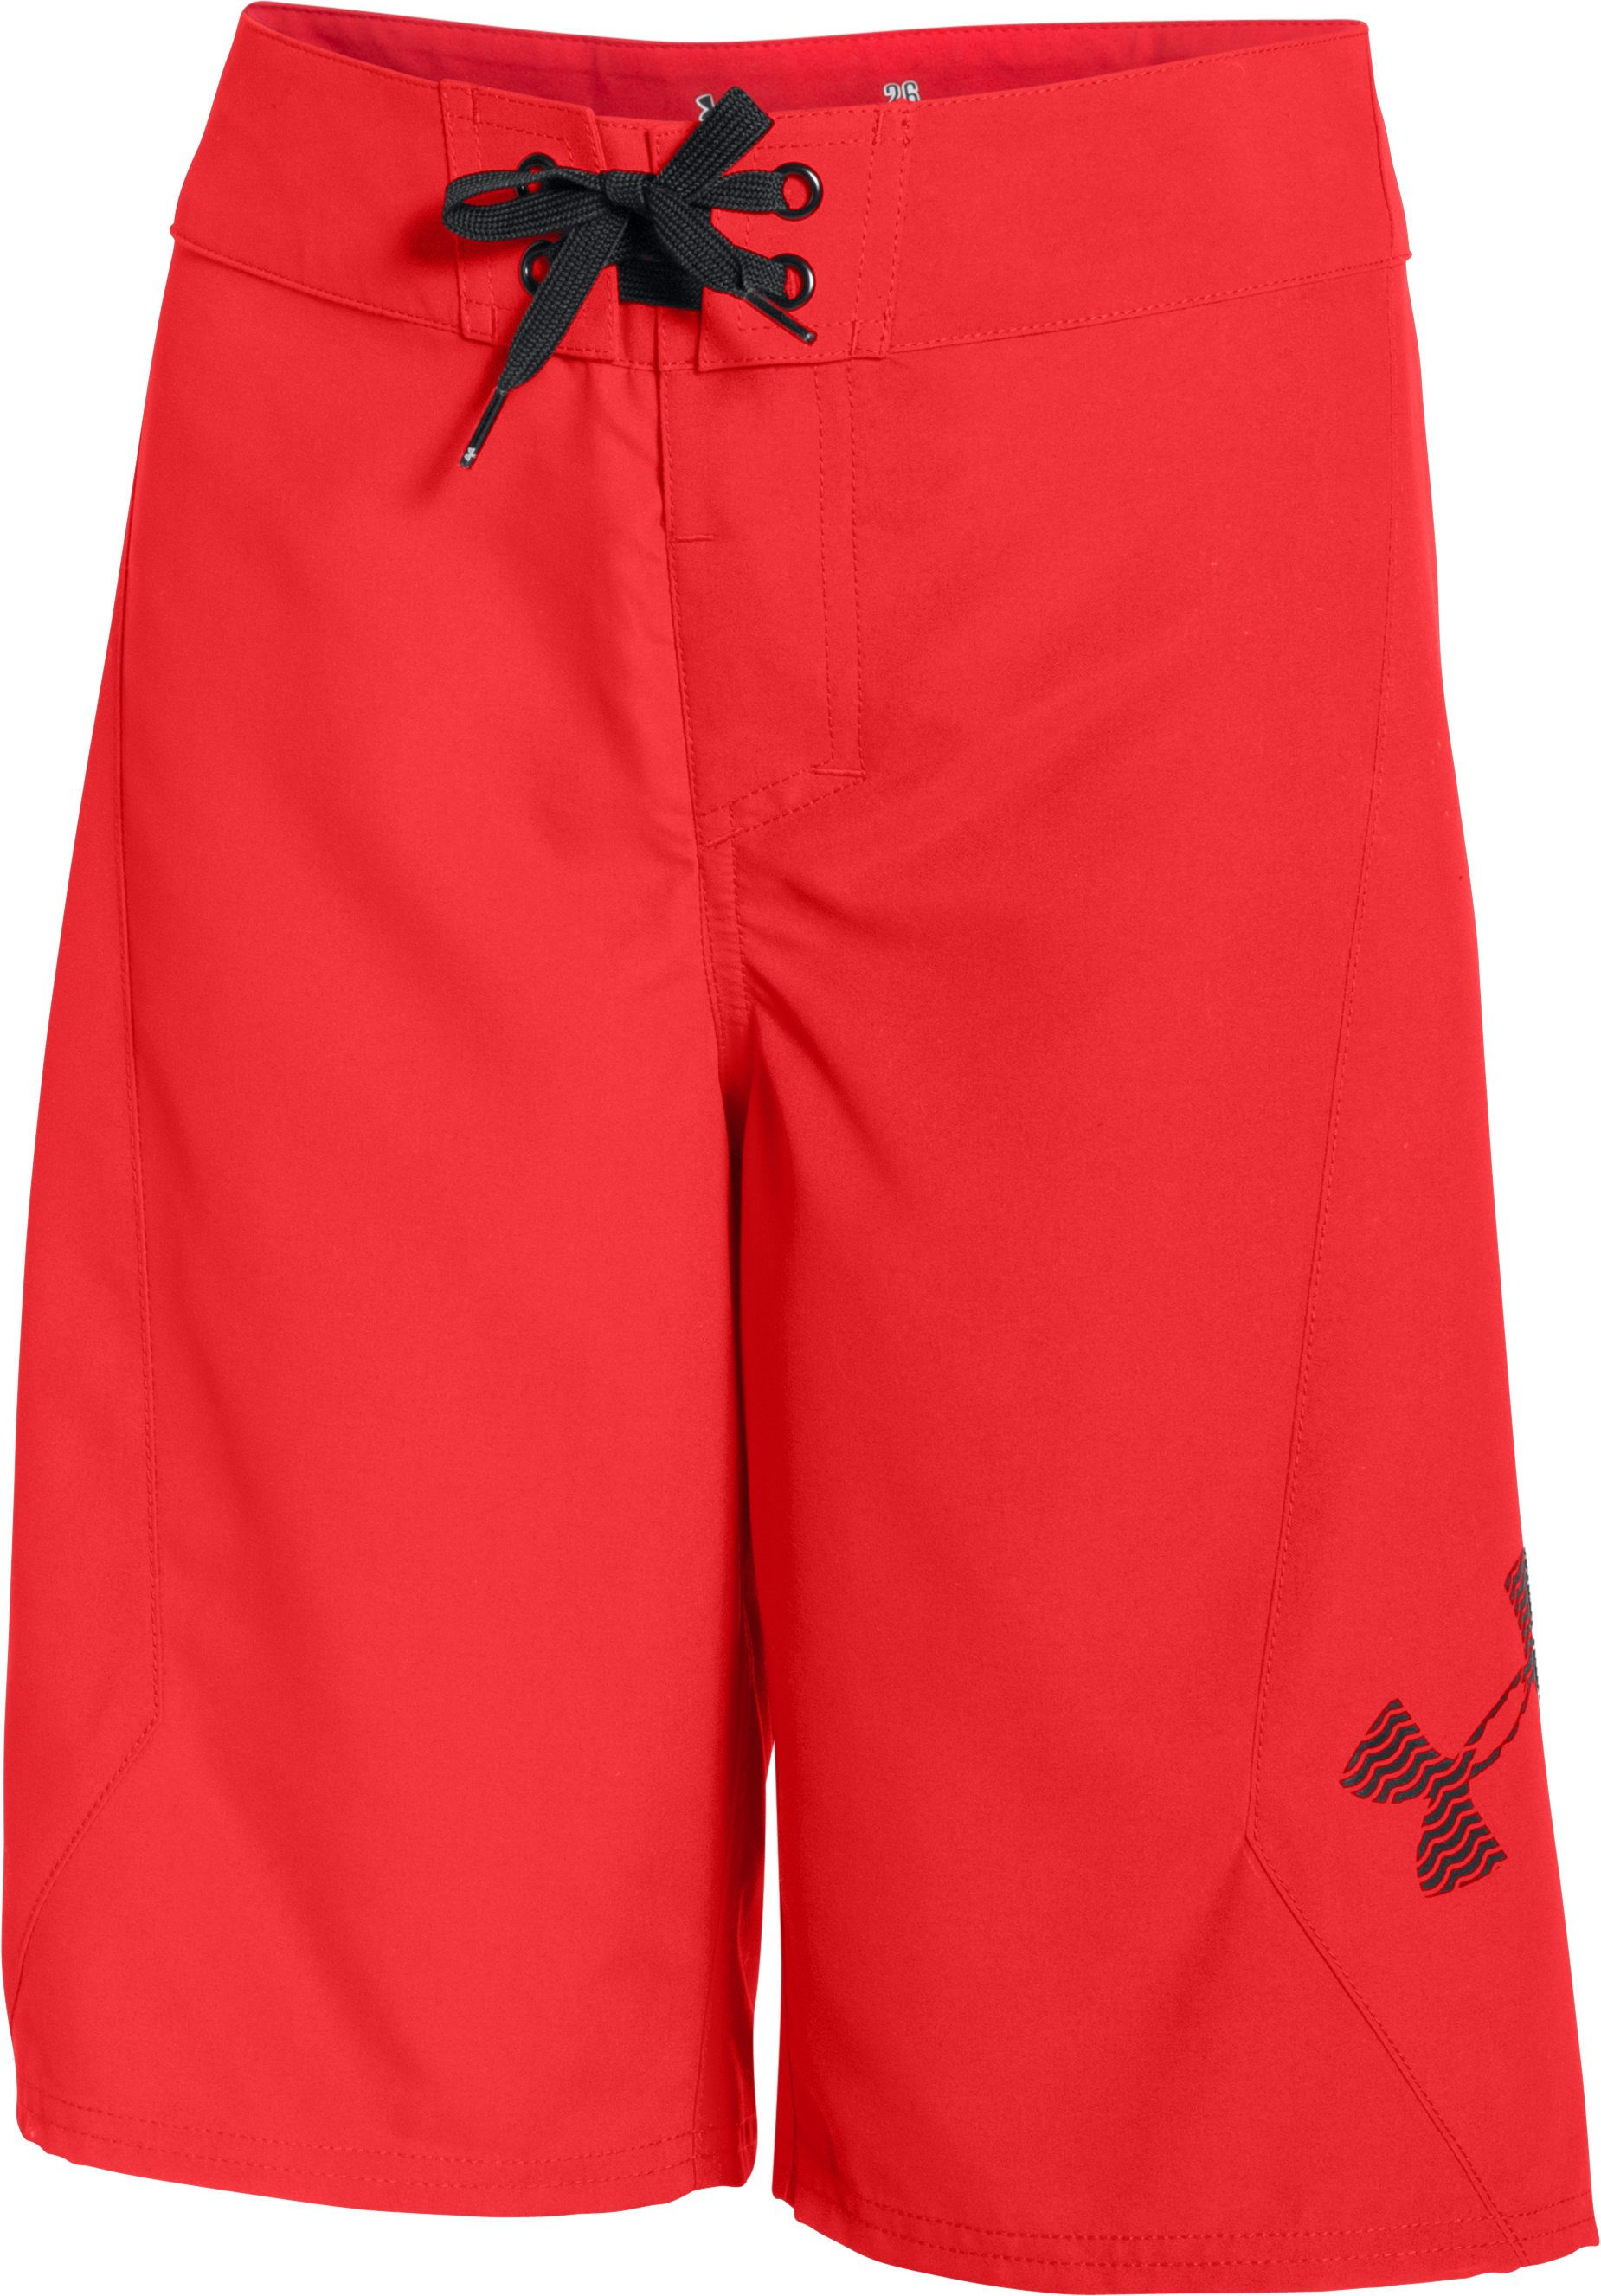 Boys' UA Shorebreak Boardshorts, ROCKET RED, zoomed image